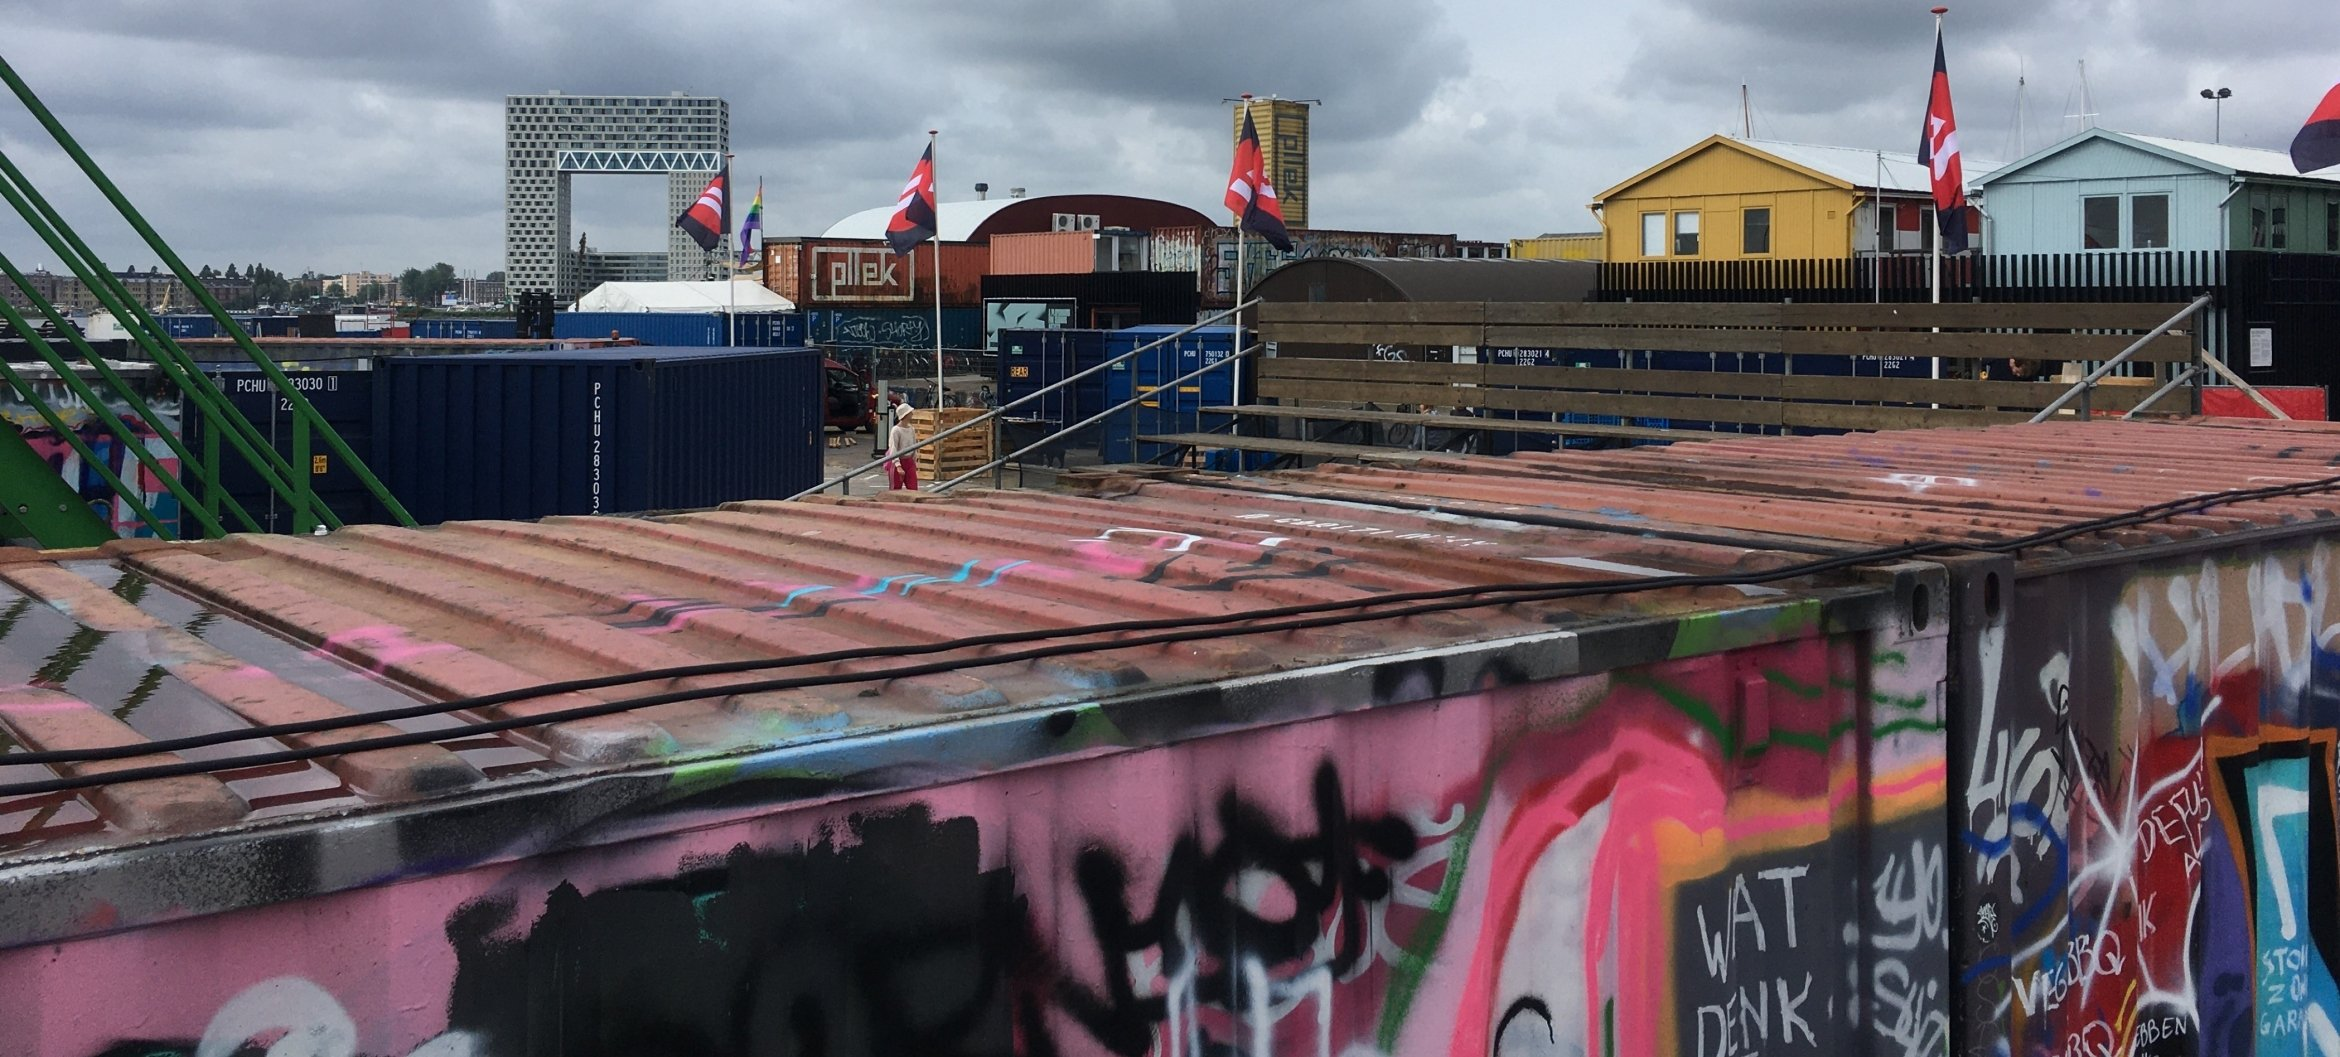 Over het IJ Festival grounds, where students of the Master Music Theater at ArtEZ will present their own performances.